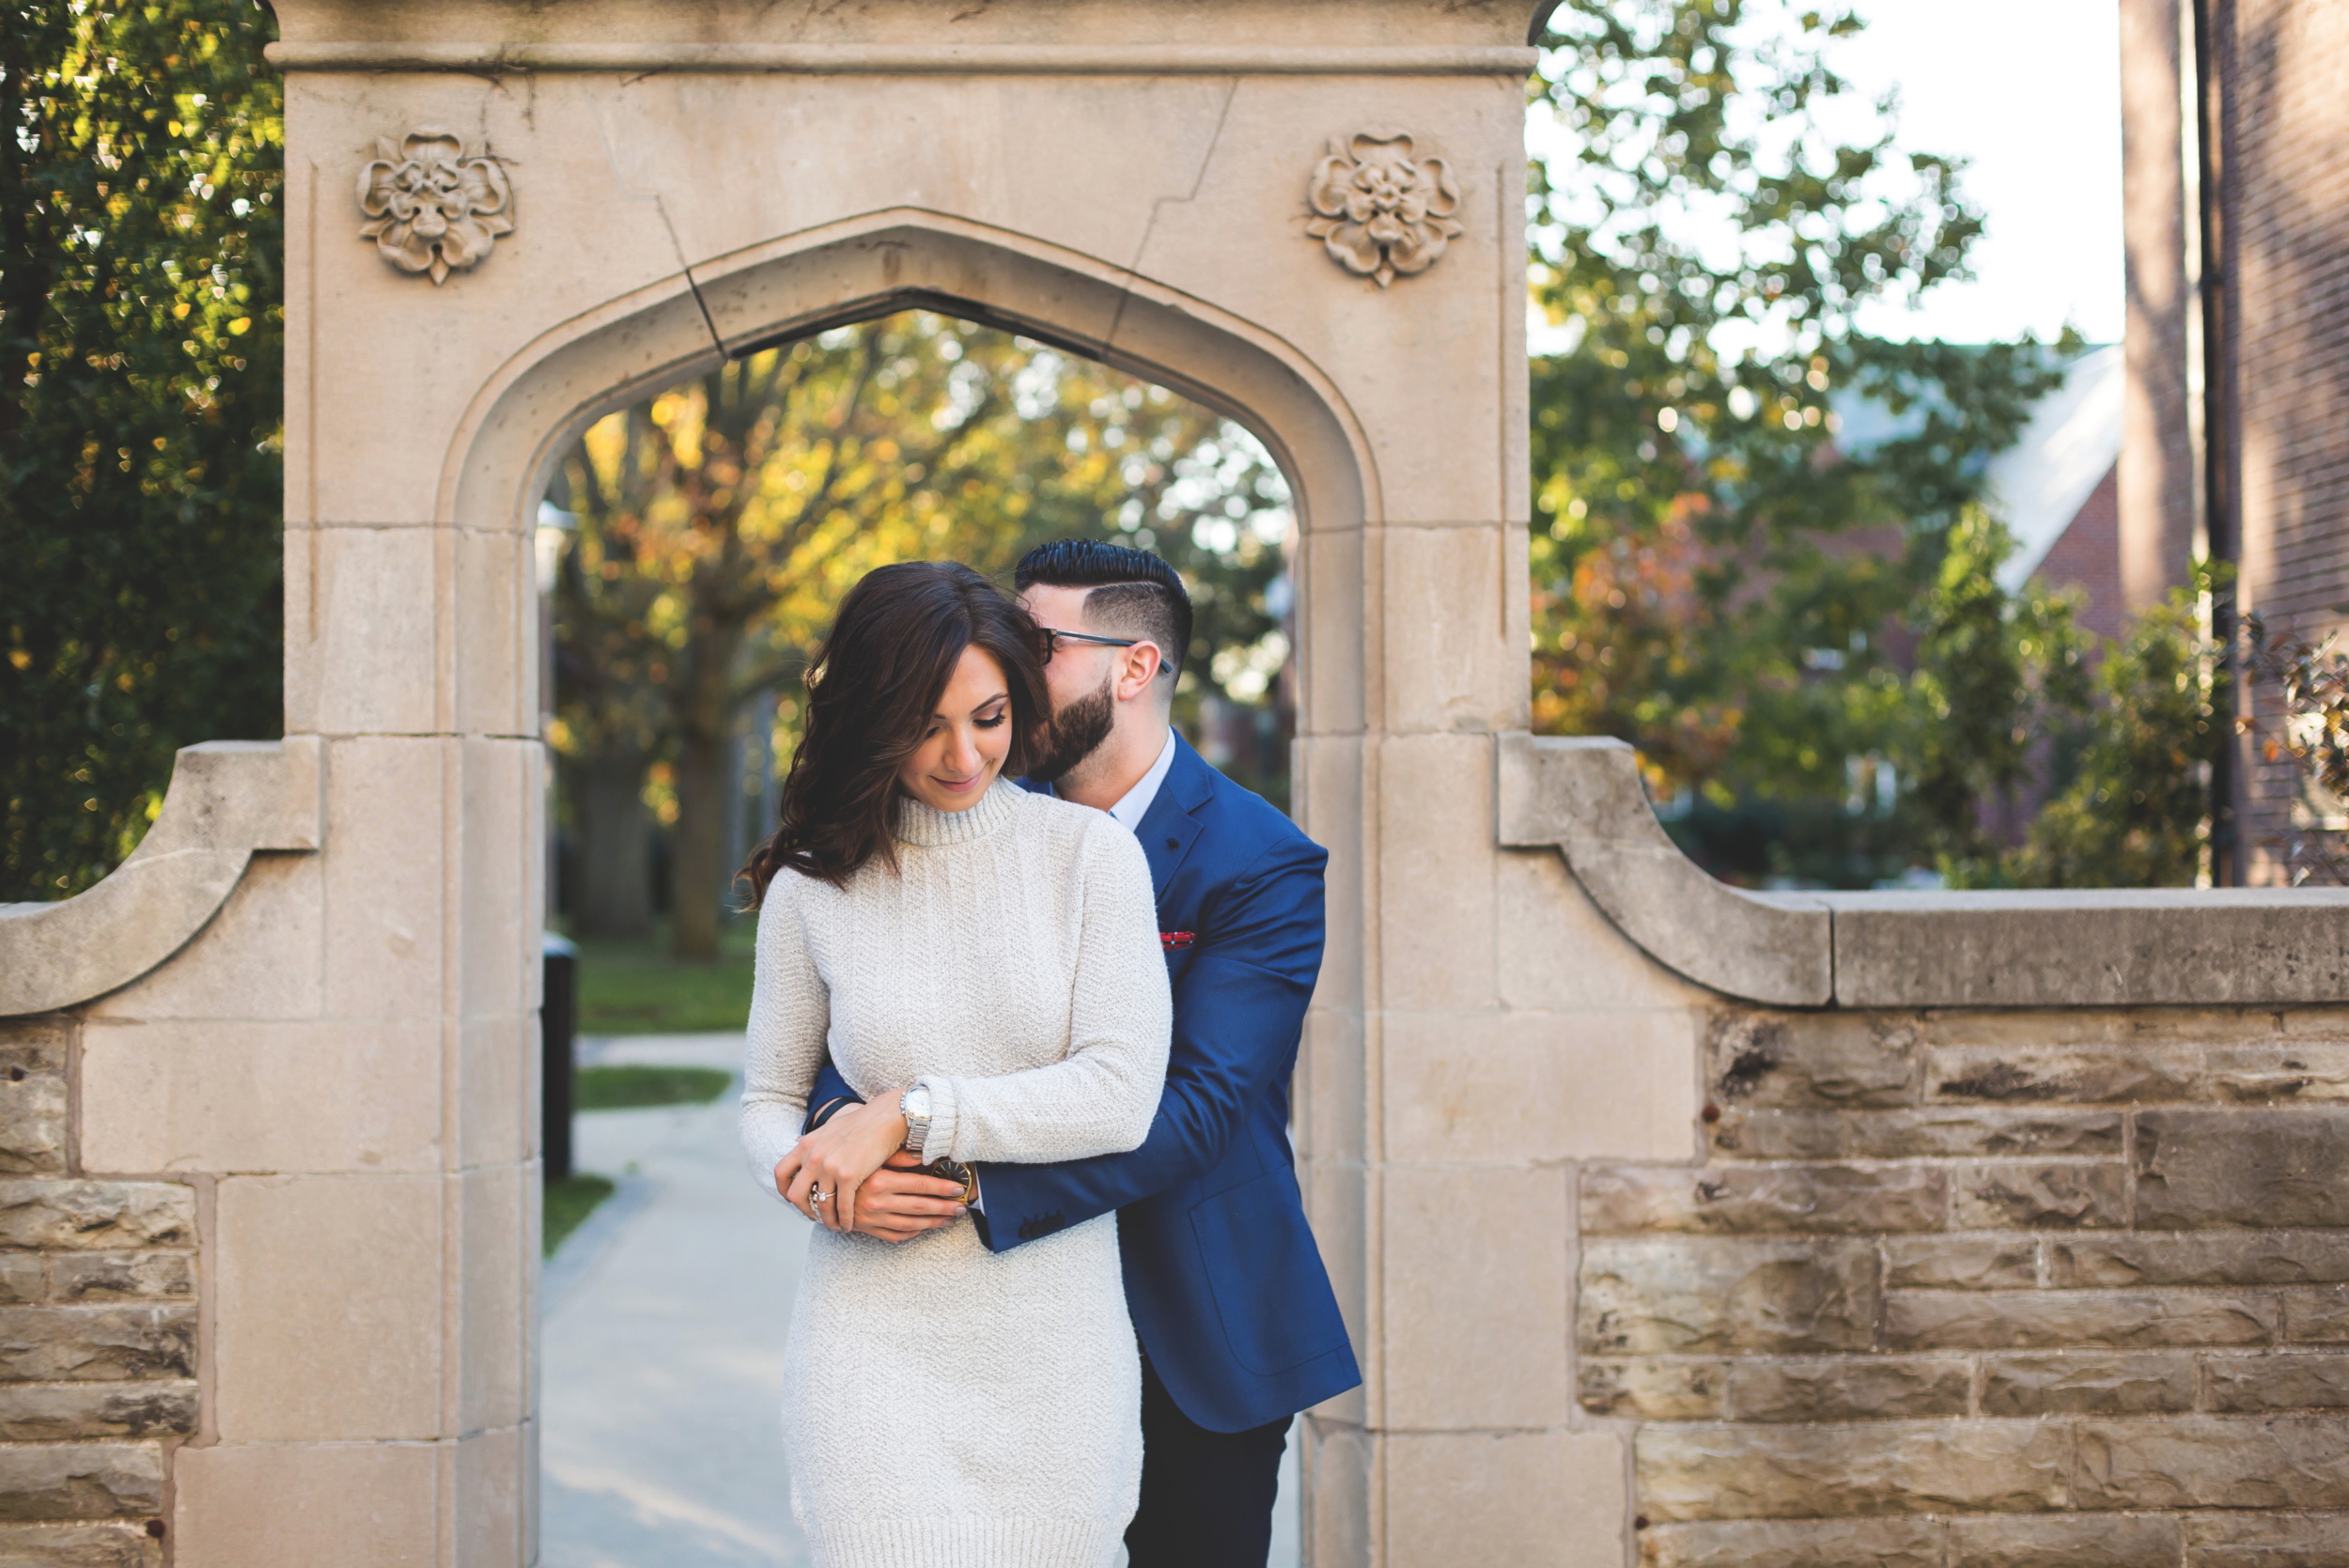 Engagement-Photography-McMaster-University-Campus-Hamilton-Burlington-Oakville-Niagara-Toronto-Wedding-Photographer-Moments-by-Lauren-Photo-Image-10.png